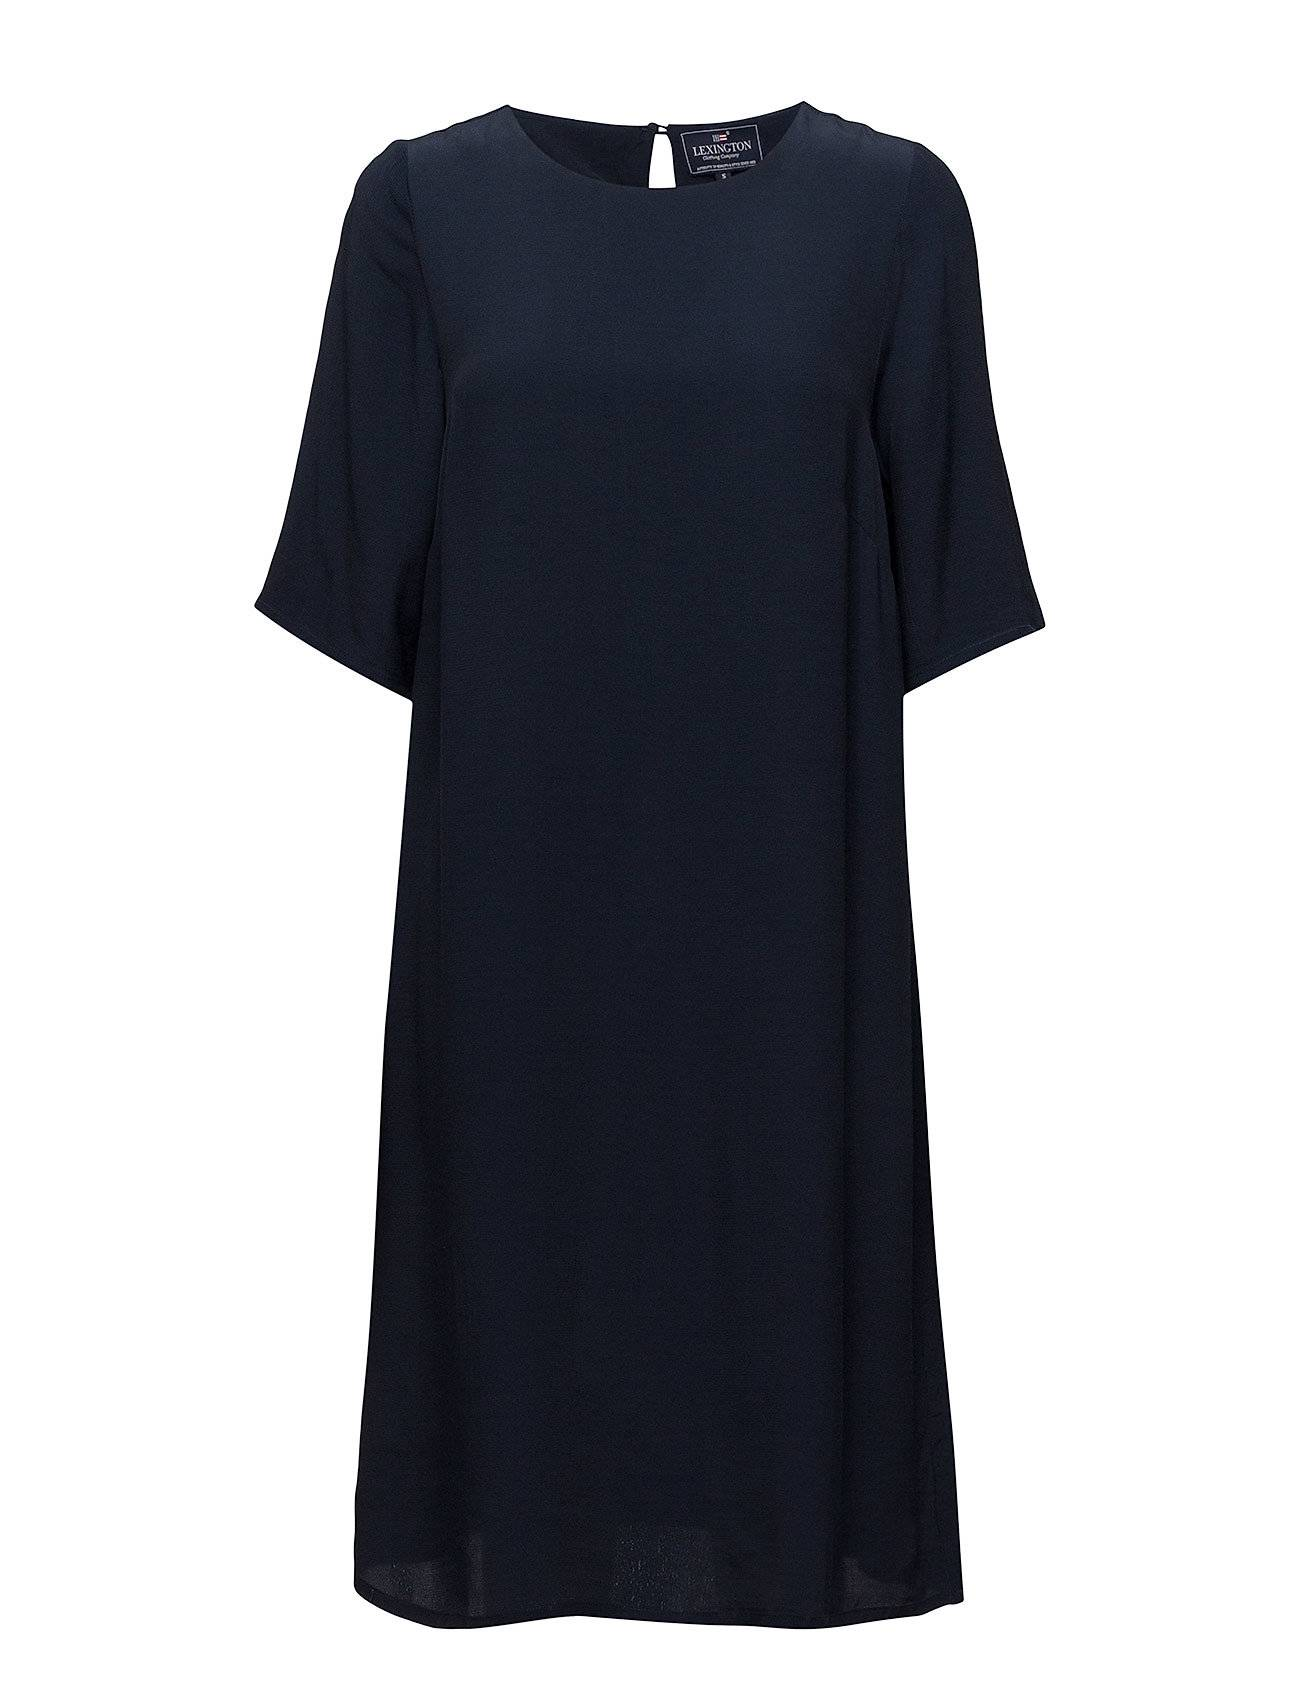 Lexington Clothing Grace Dress